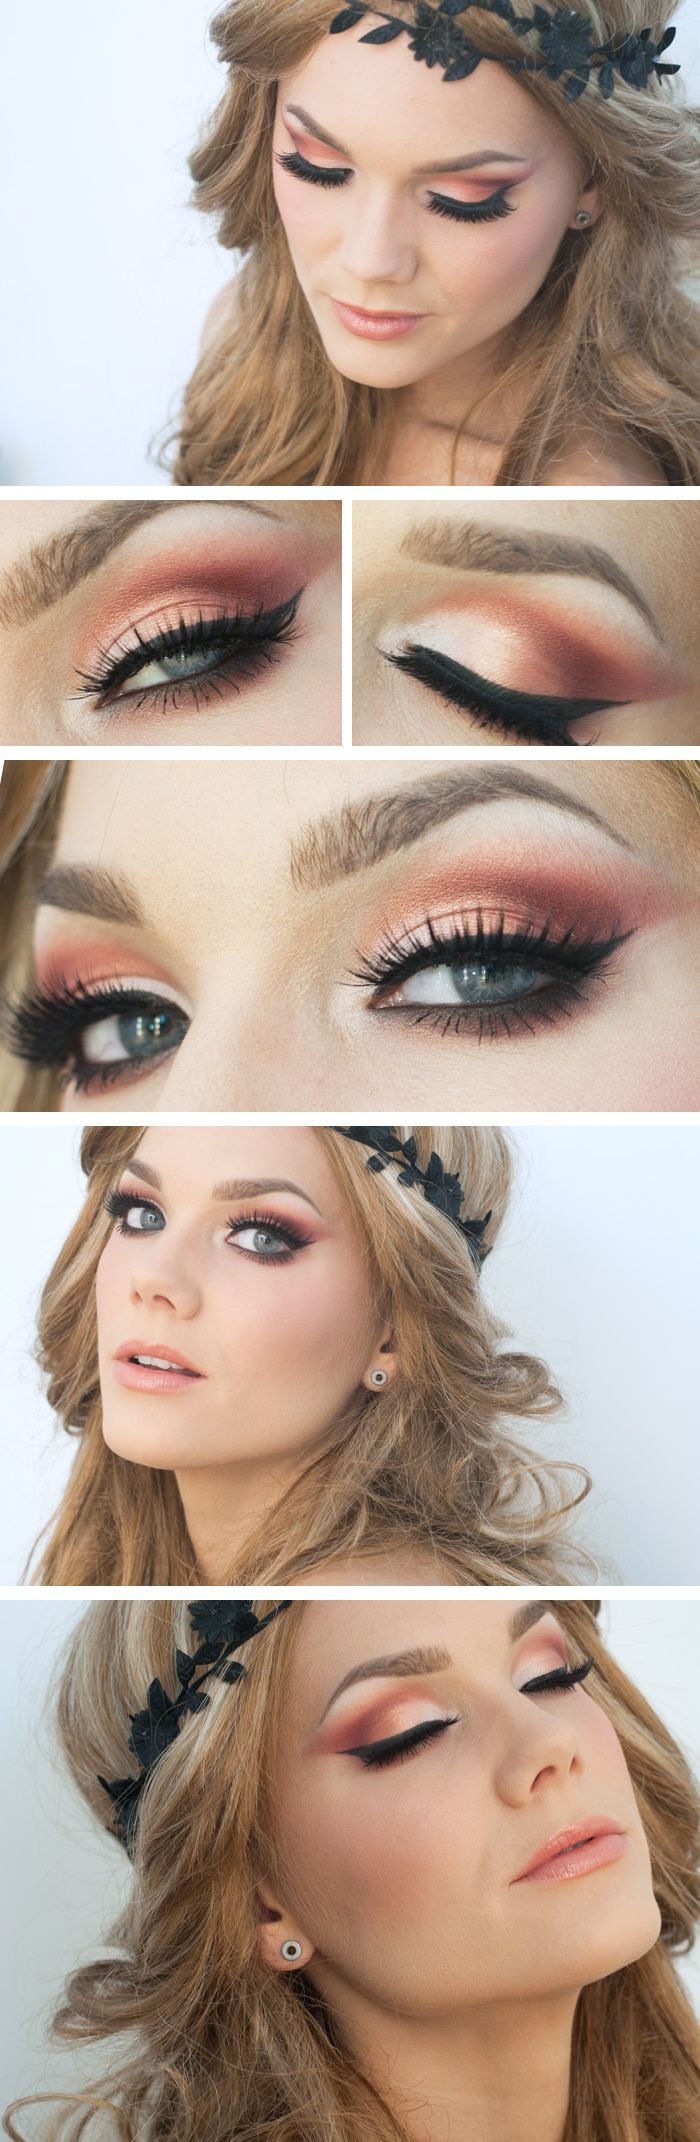 "Today's Look: ""Midsummer"" -Linda Hallberg (this is a scrumptious eye look perfect for summer, it just screams peaches and cream to me)04/08/13"